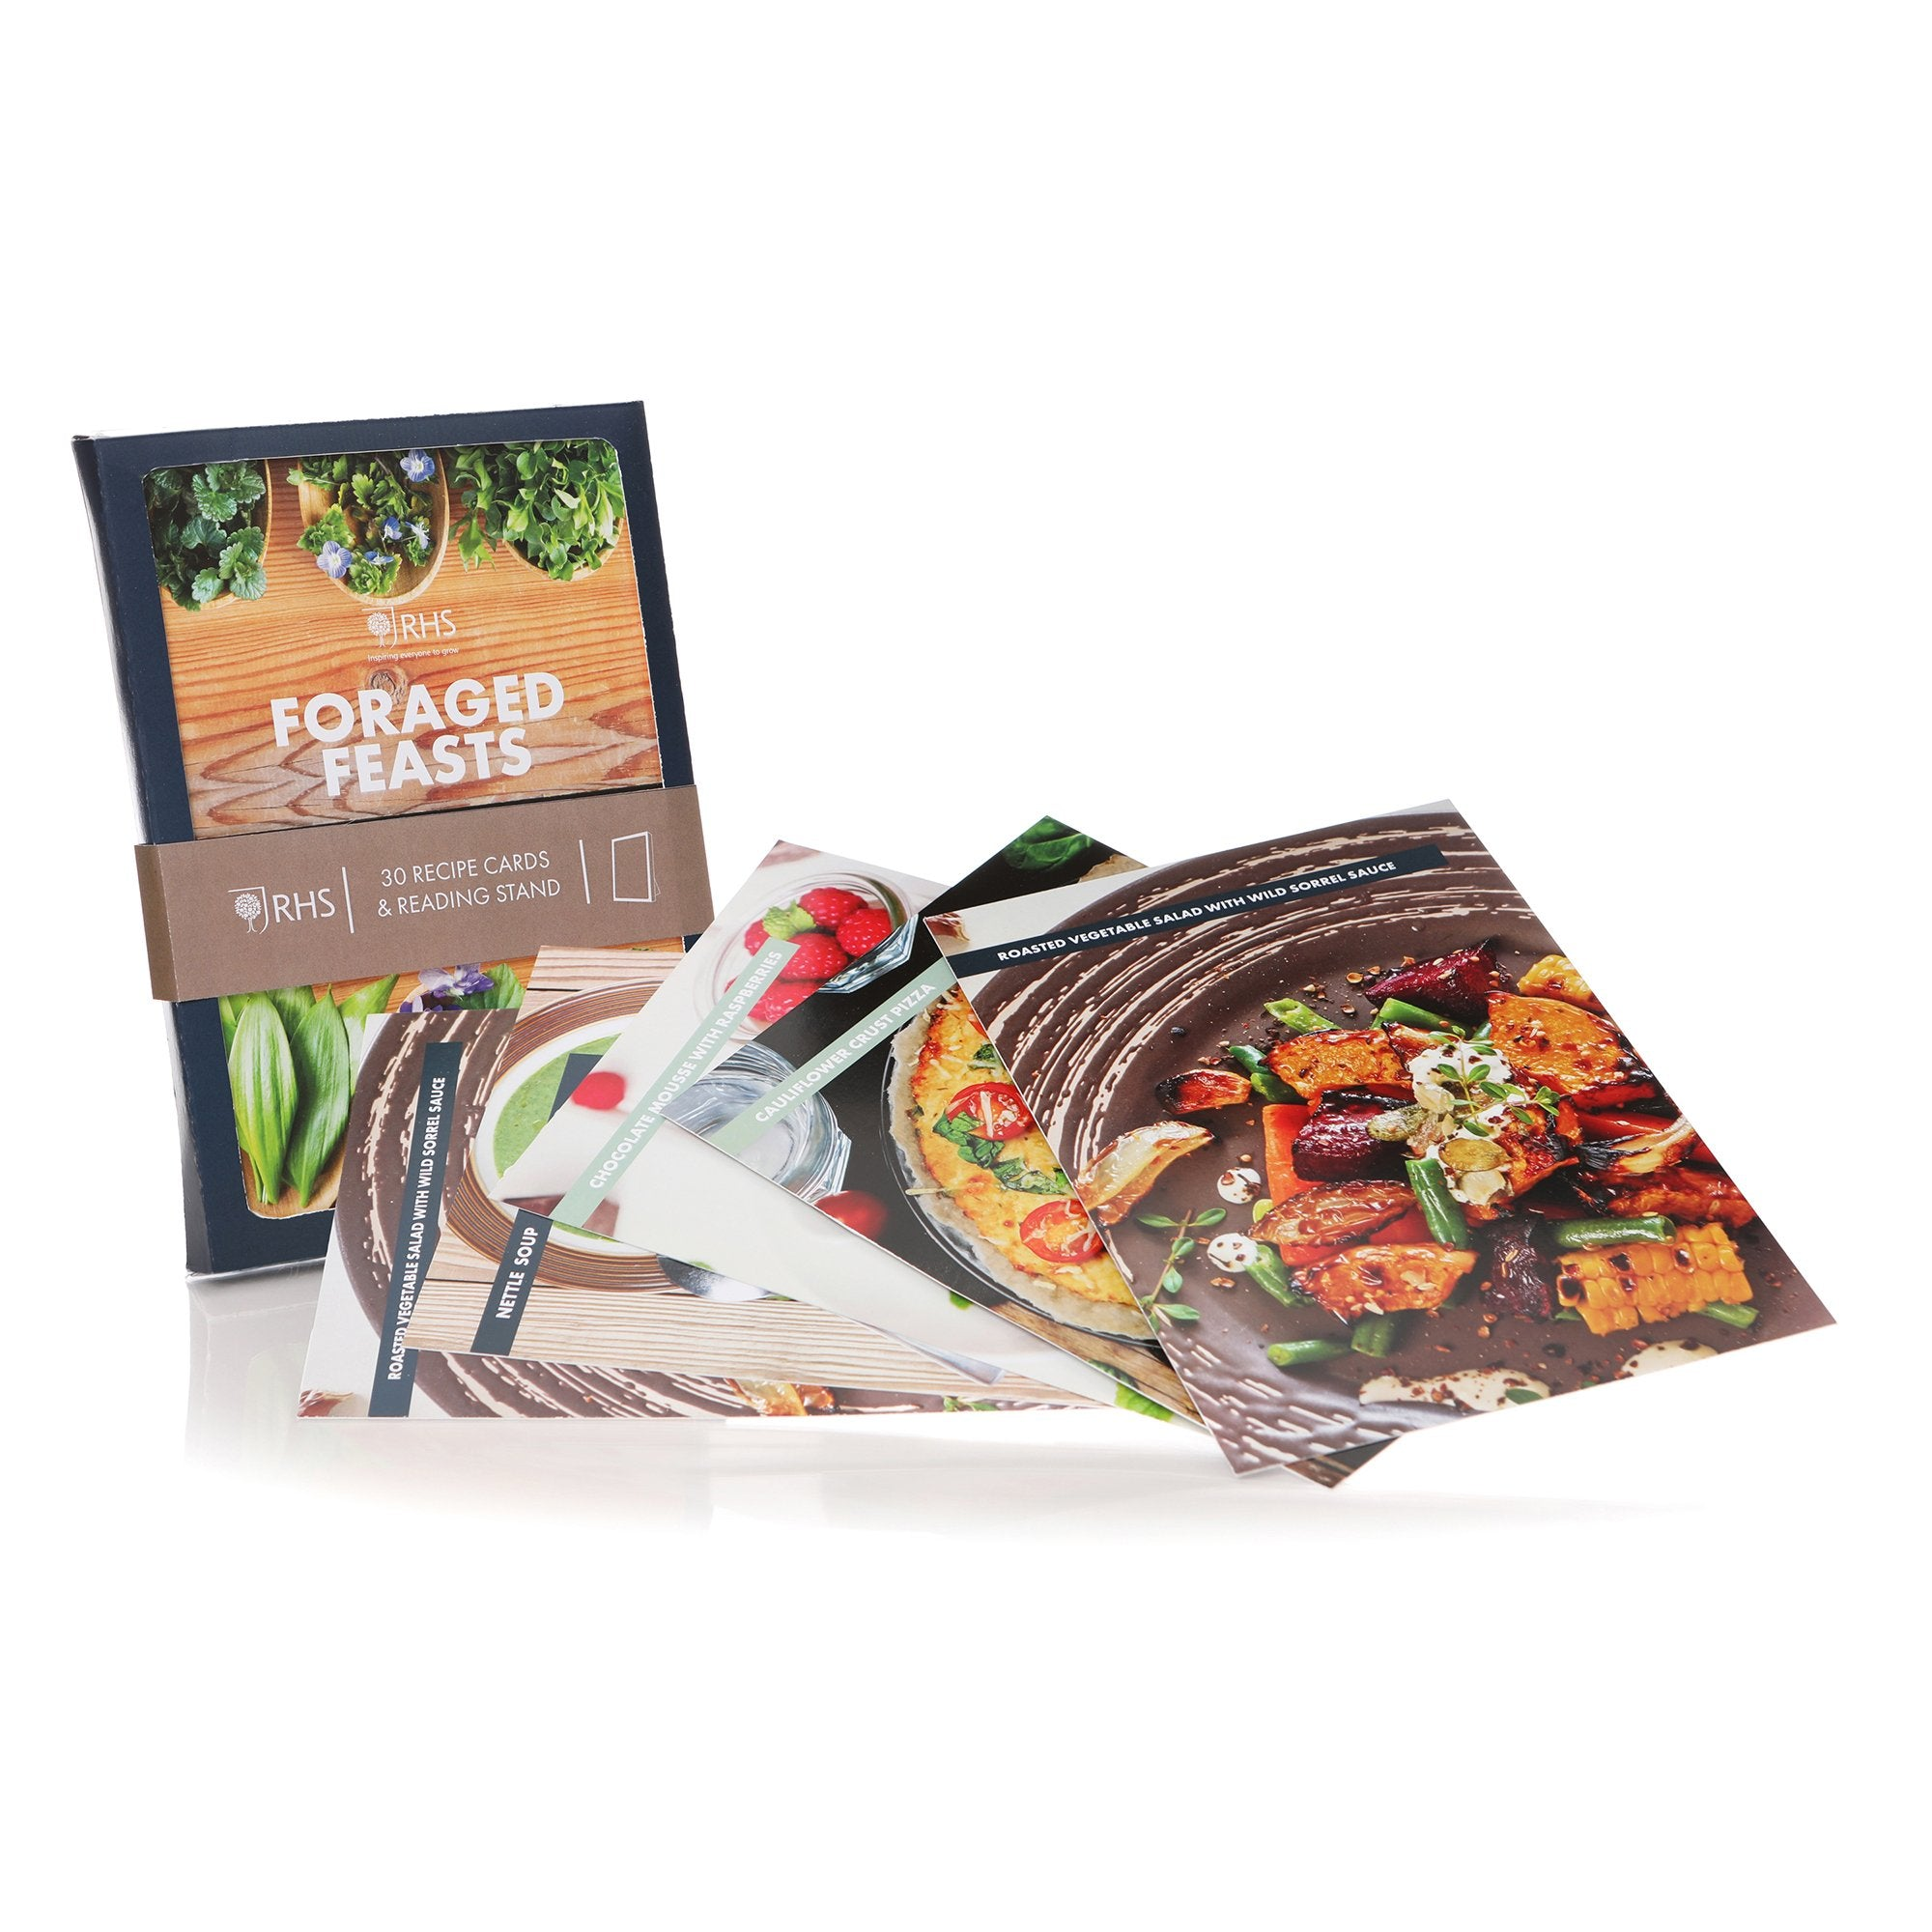 RHS Recipe Cards Box - Foraged Feasts - Half Moon Bay US